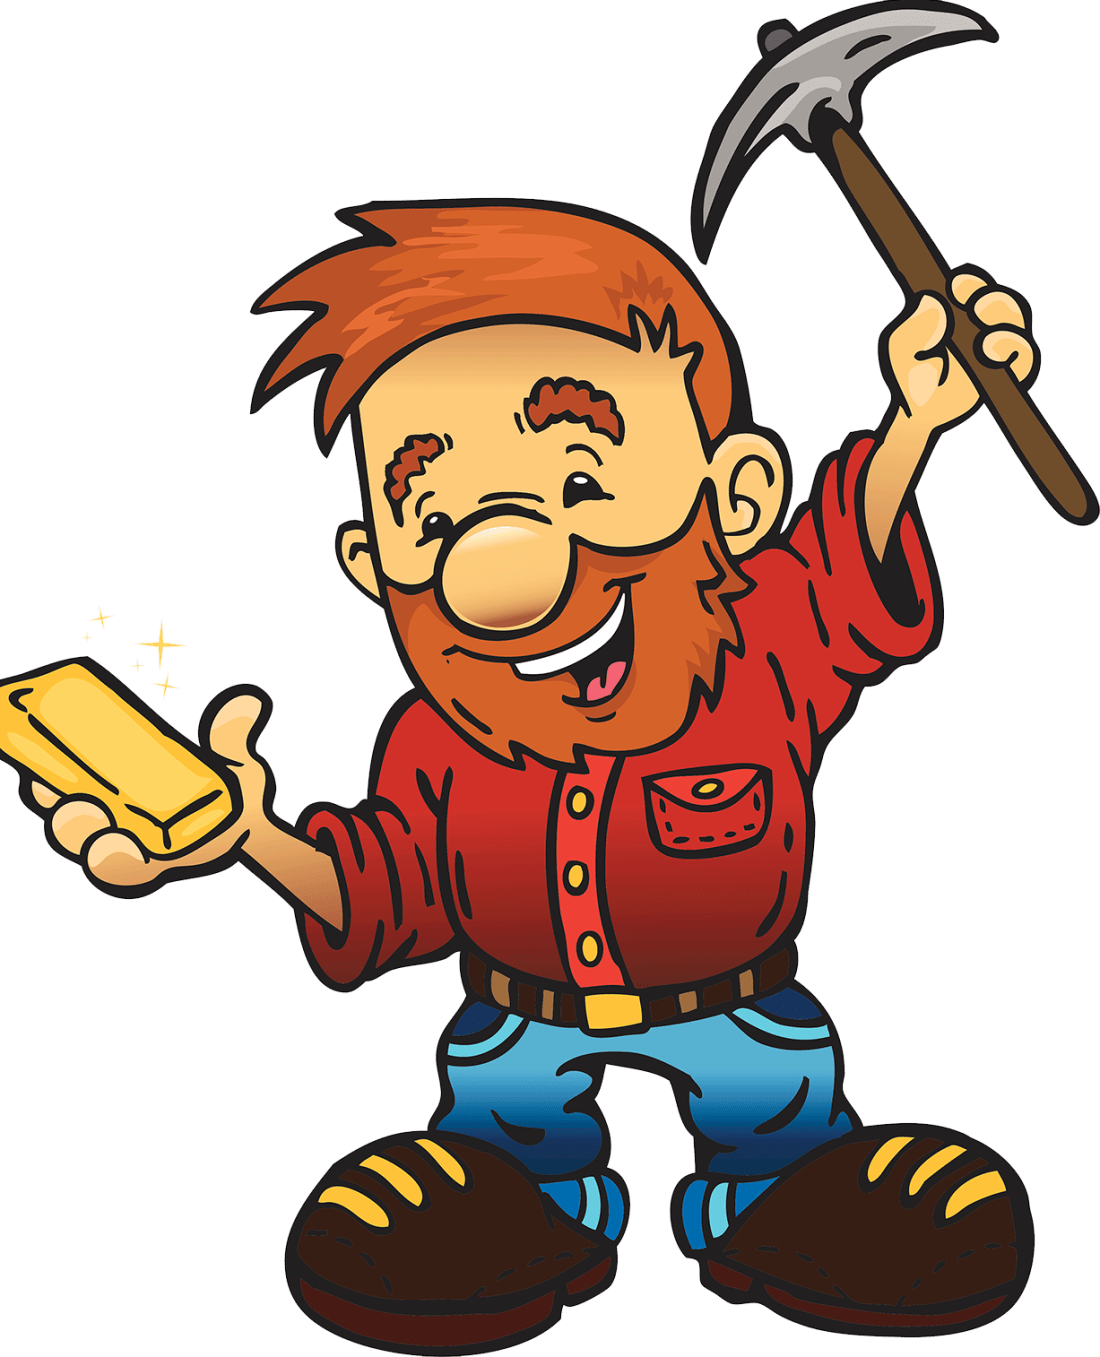 Miner holding gold and pick axe